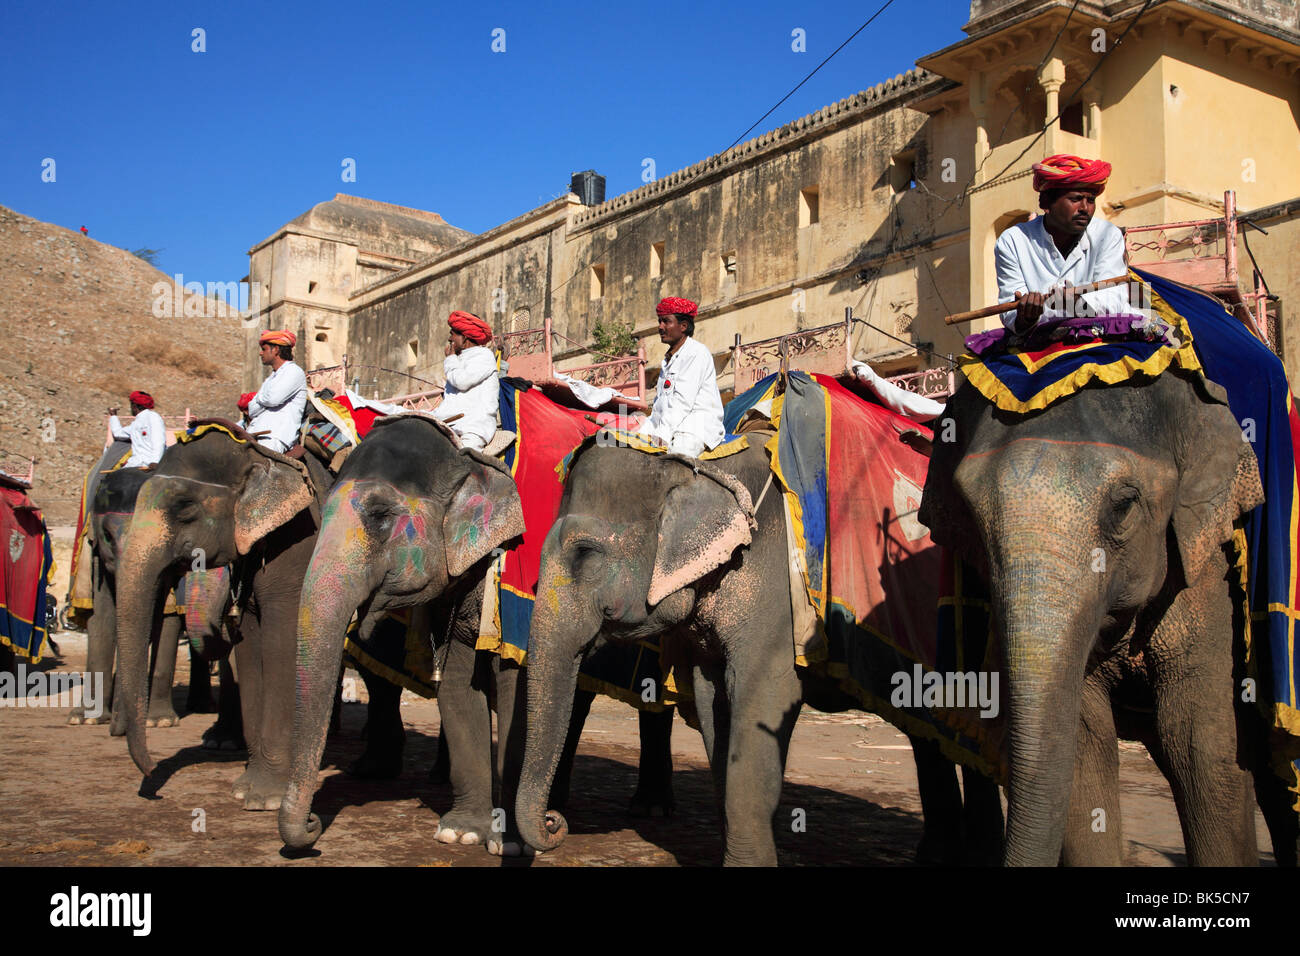 Mahouts and elephants, Amber Fort Palace, Jaipur, Rajasthan, India, Asia - Stock Image